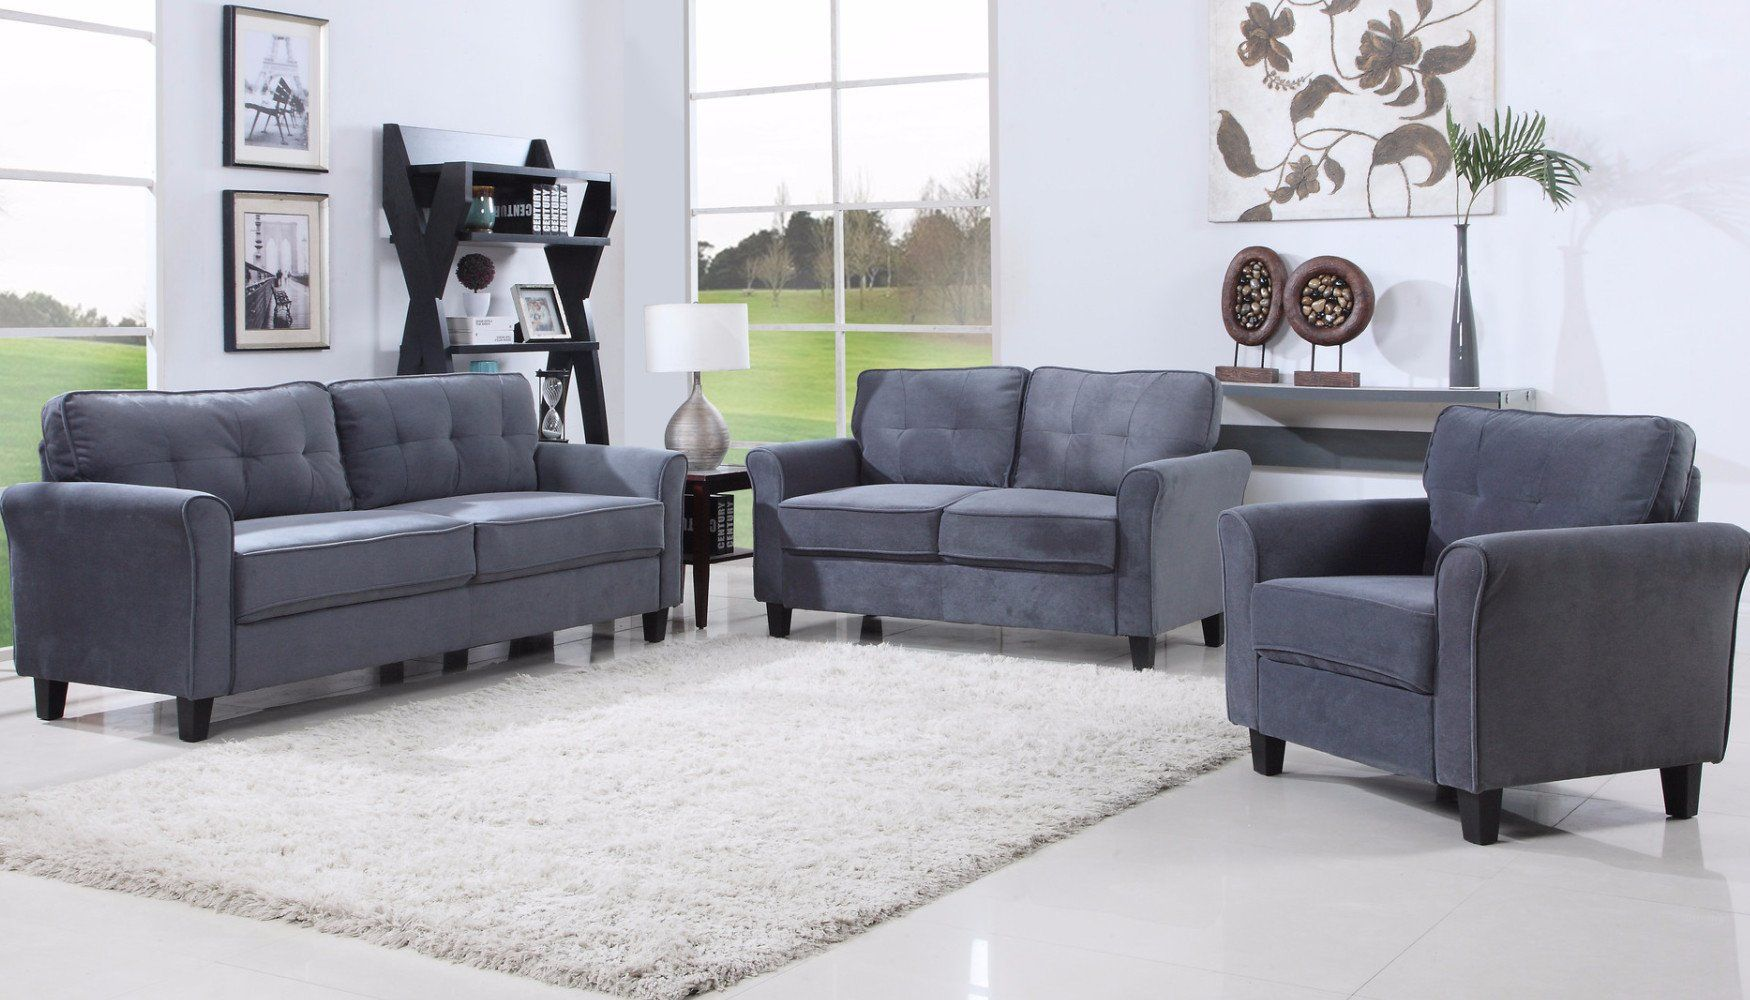 11+ Gray microfiber living room sets ideas